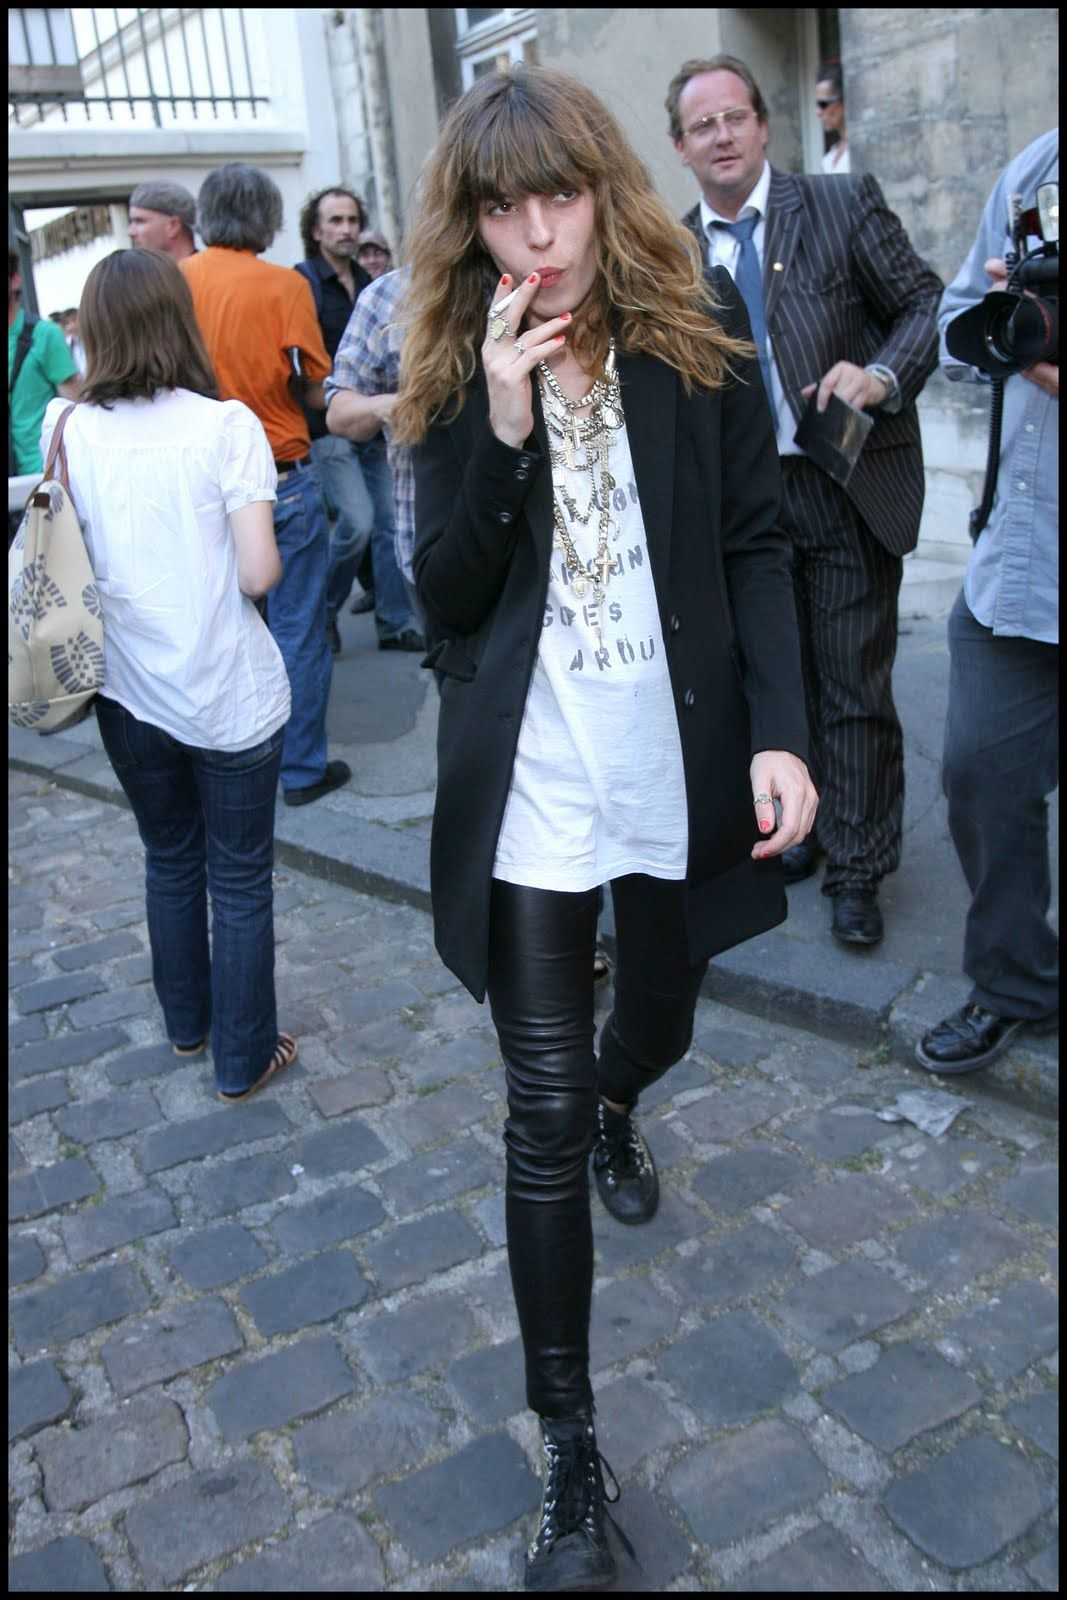 Lou Doillon. I shamelessly stole her hair. Resisting the urge to also raid her wardrobe.